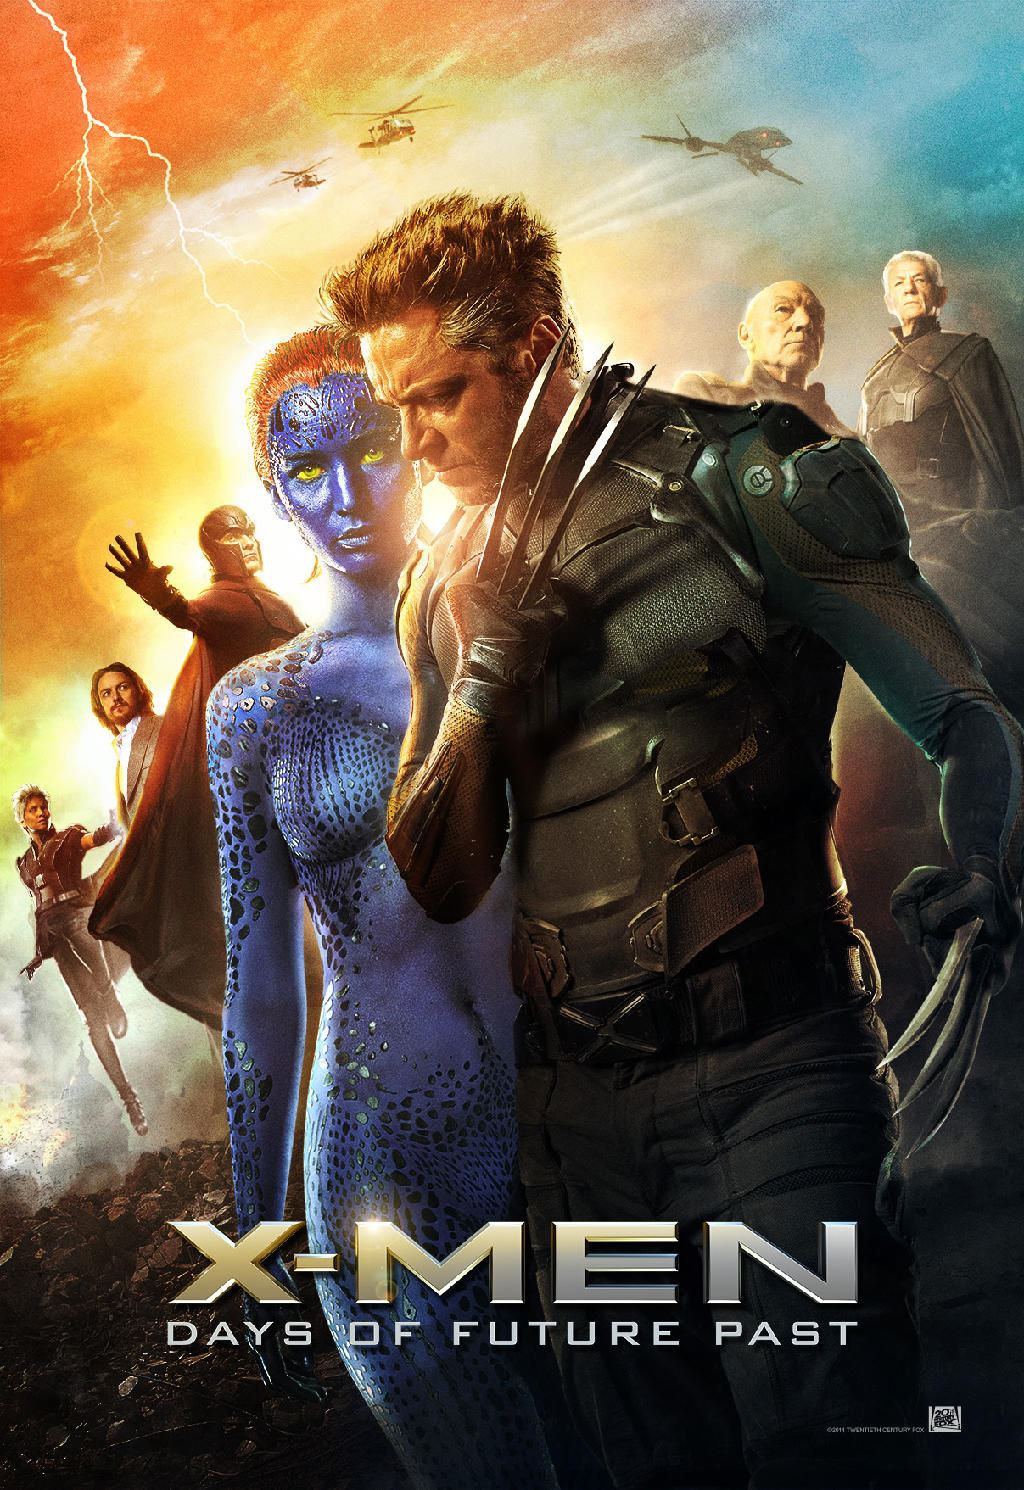 X-Men - Days of future past, Röda kvarn Edsbyn